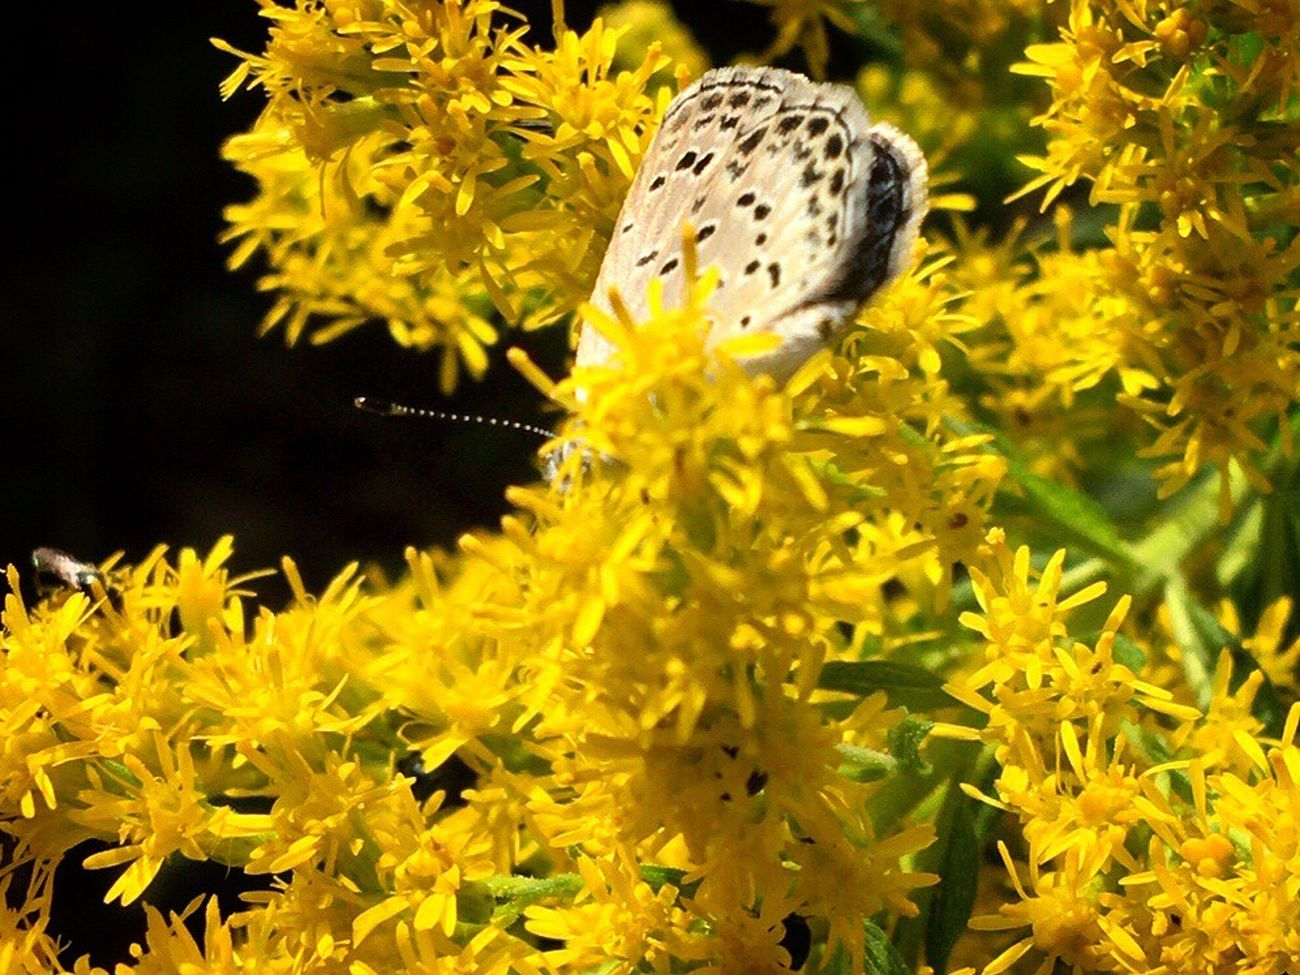 Yellow Flower One Animal Nature Fragility Beauty In Nature Petal Flower Head Growth Animal Themes Plant Blooming Insect Freshness No People Outdoors Day Close-up Butterfly Autumn Sillouette EyeEm Nature Lover 😊✨✨✨ Yellow World